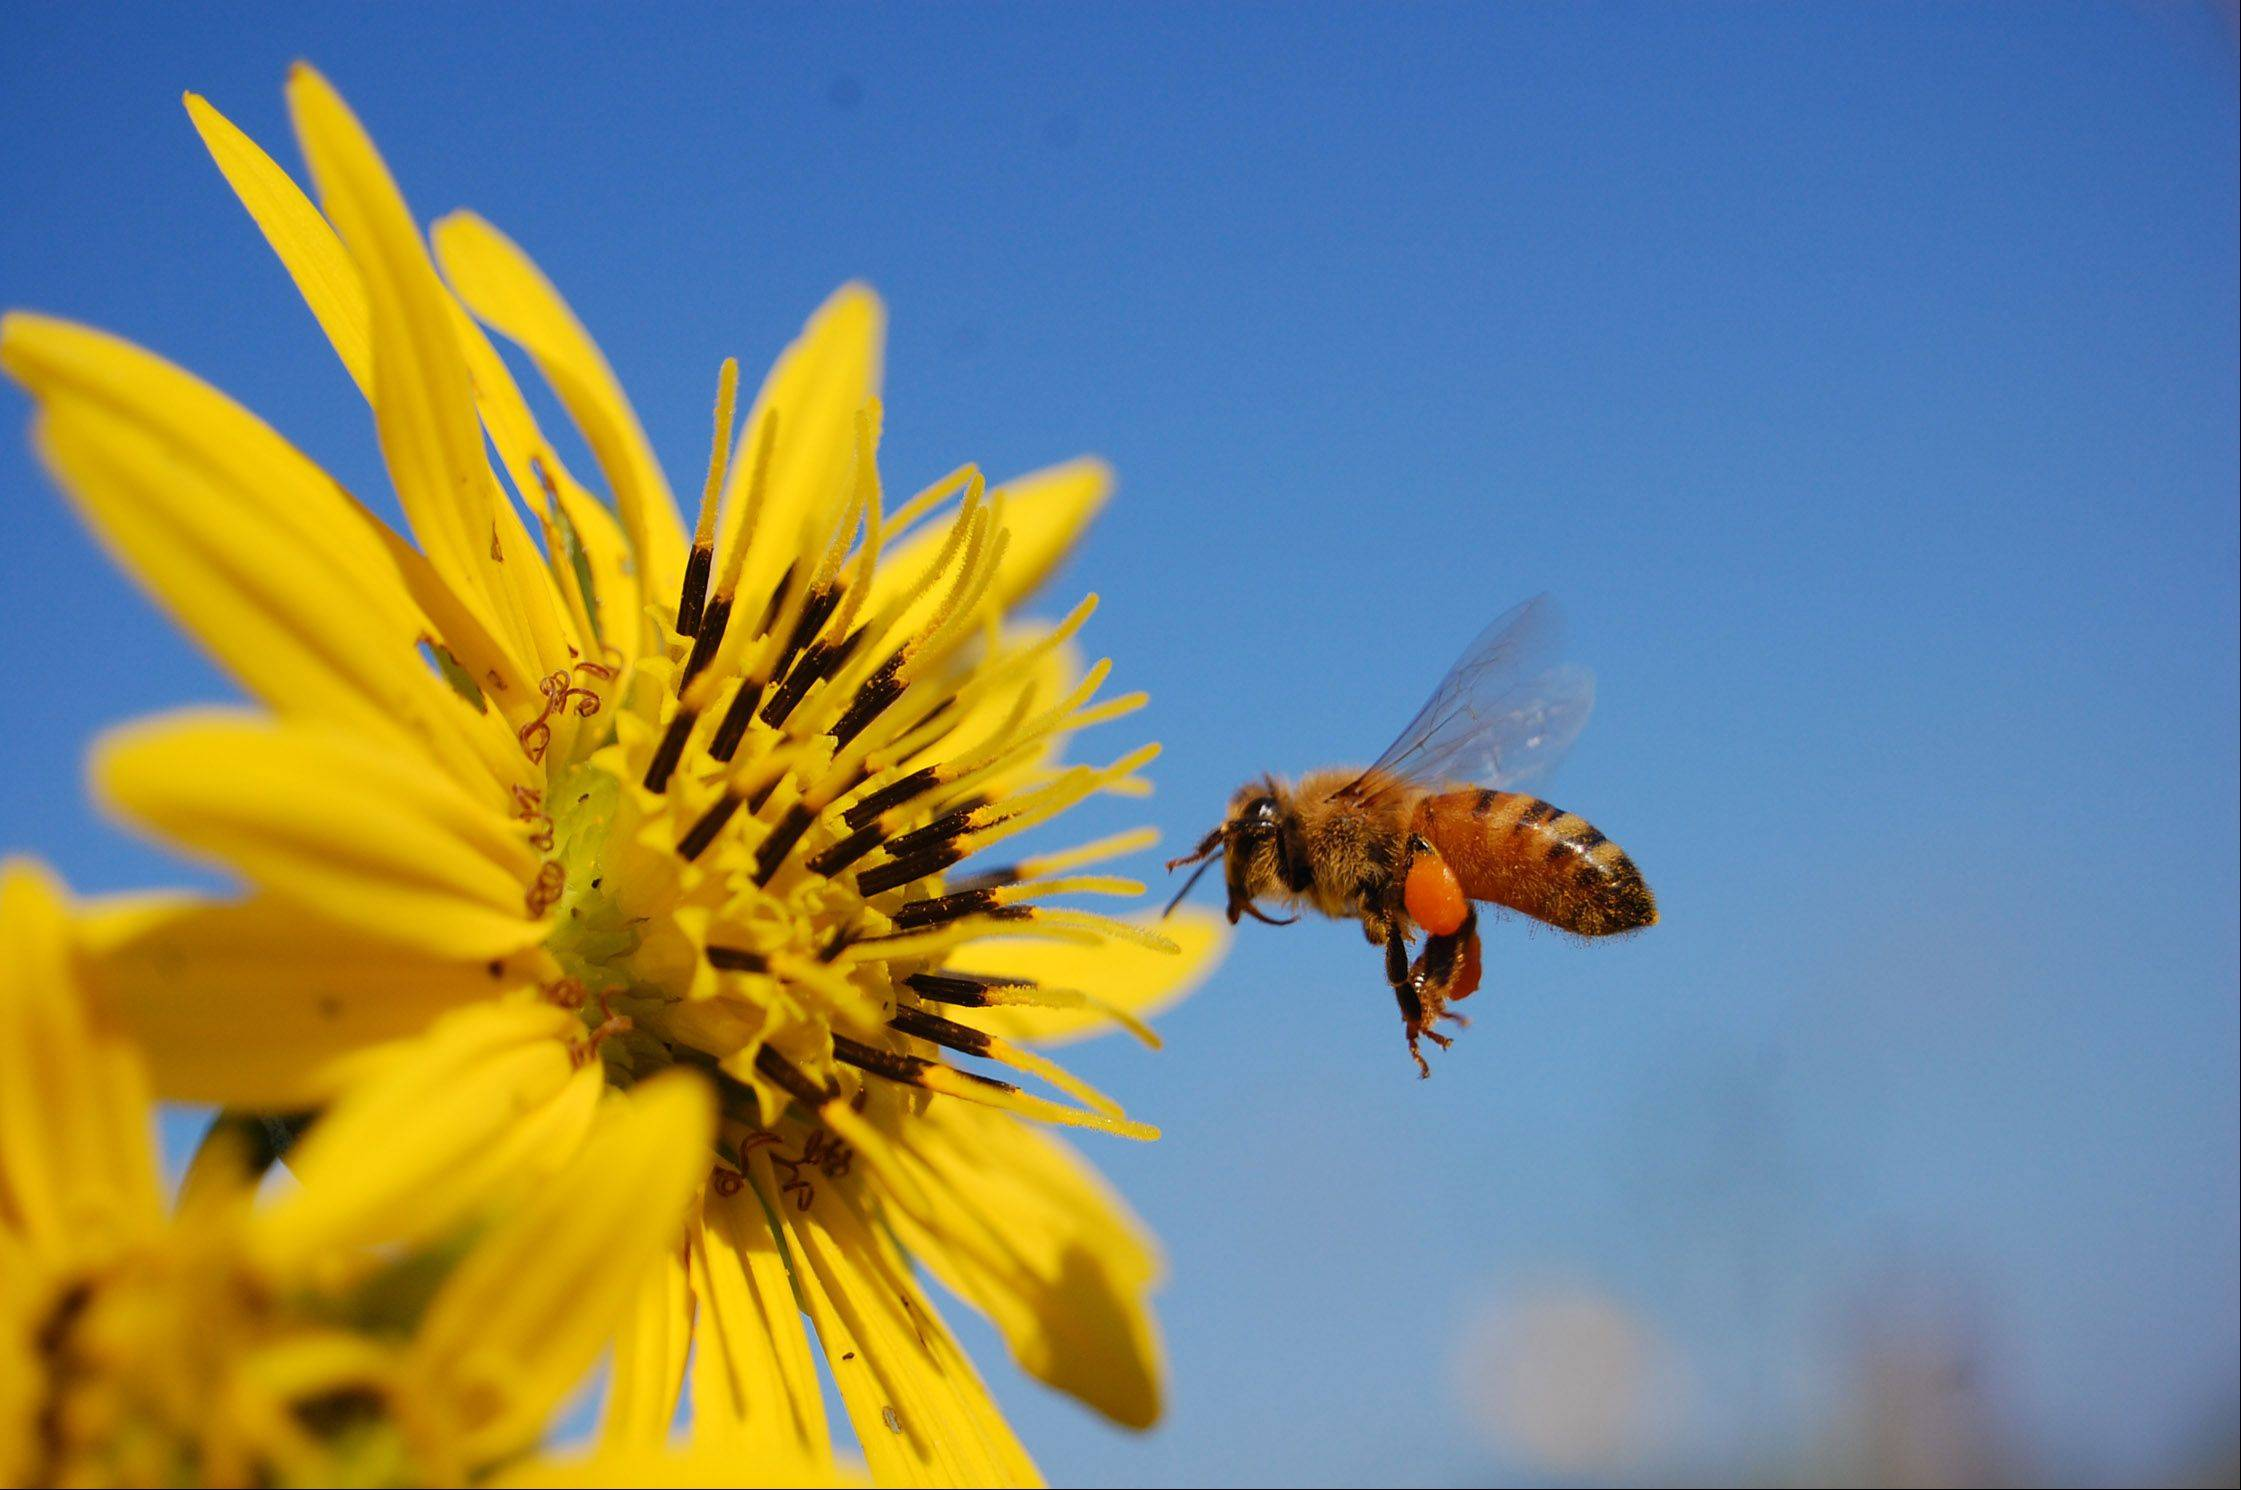 A bee buzzes around a sunflower at Volo Bog State Natural Area in Volo on August 29th.